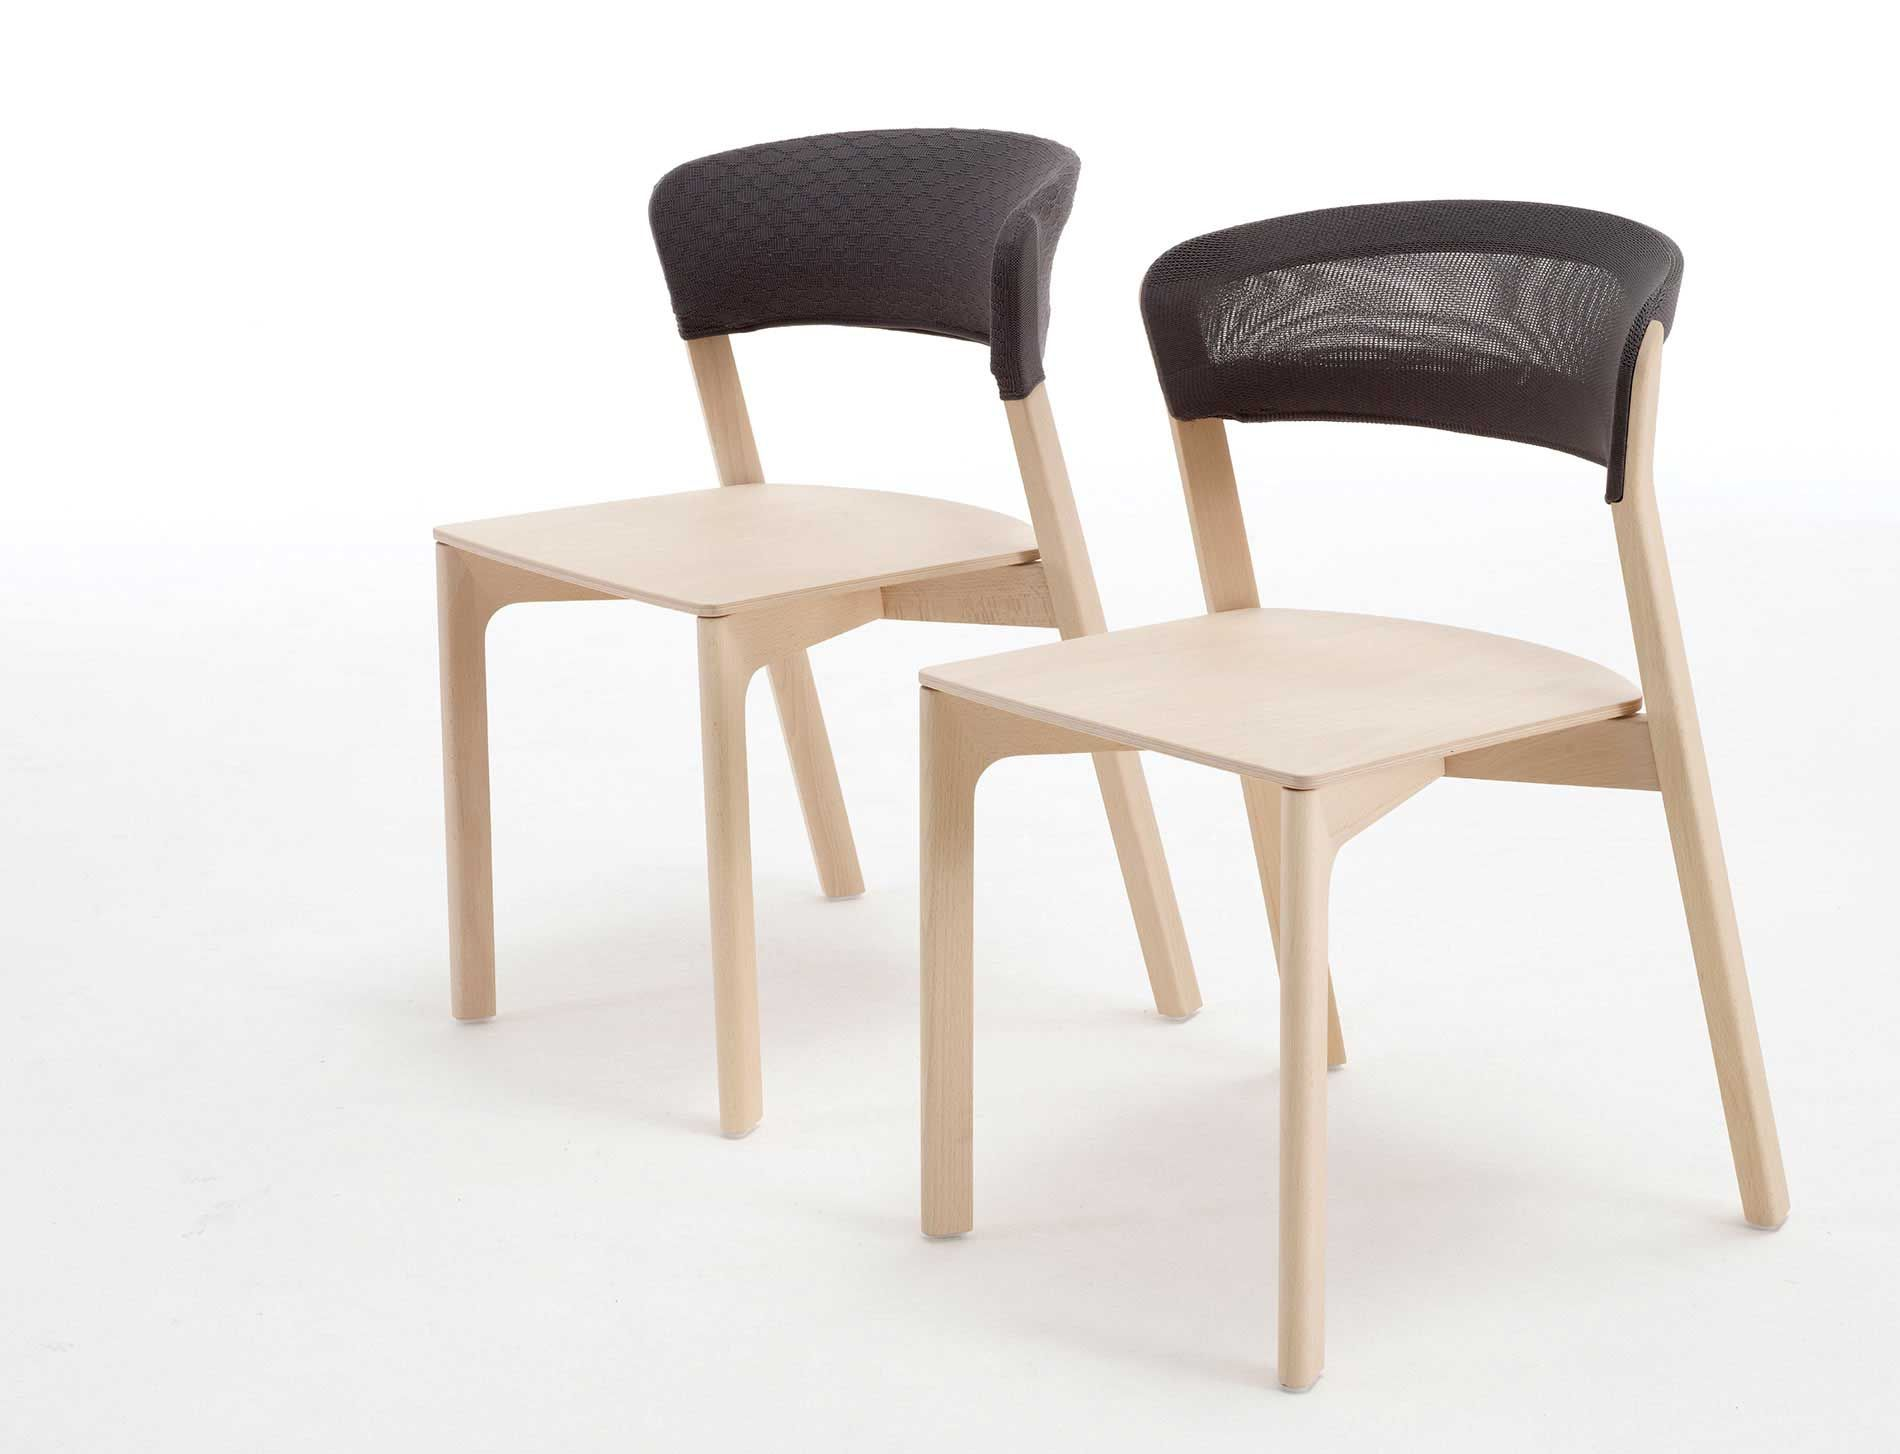 Producten Cafe Chair Cafe Chairs Chair Cafe Design Chair Design